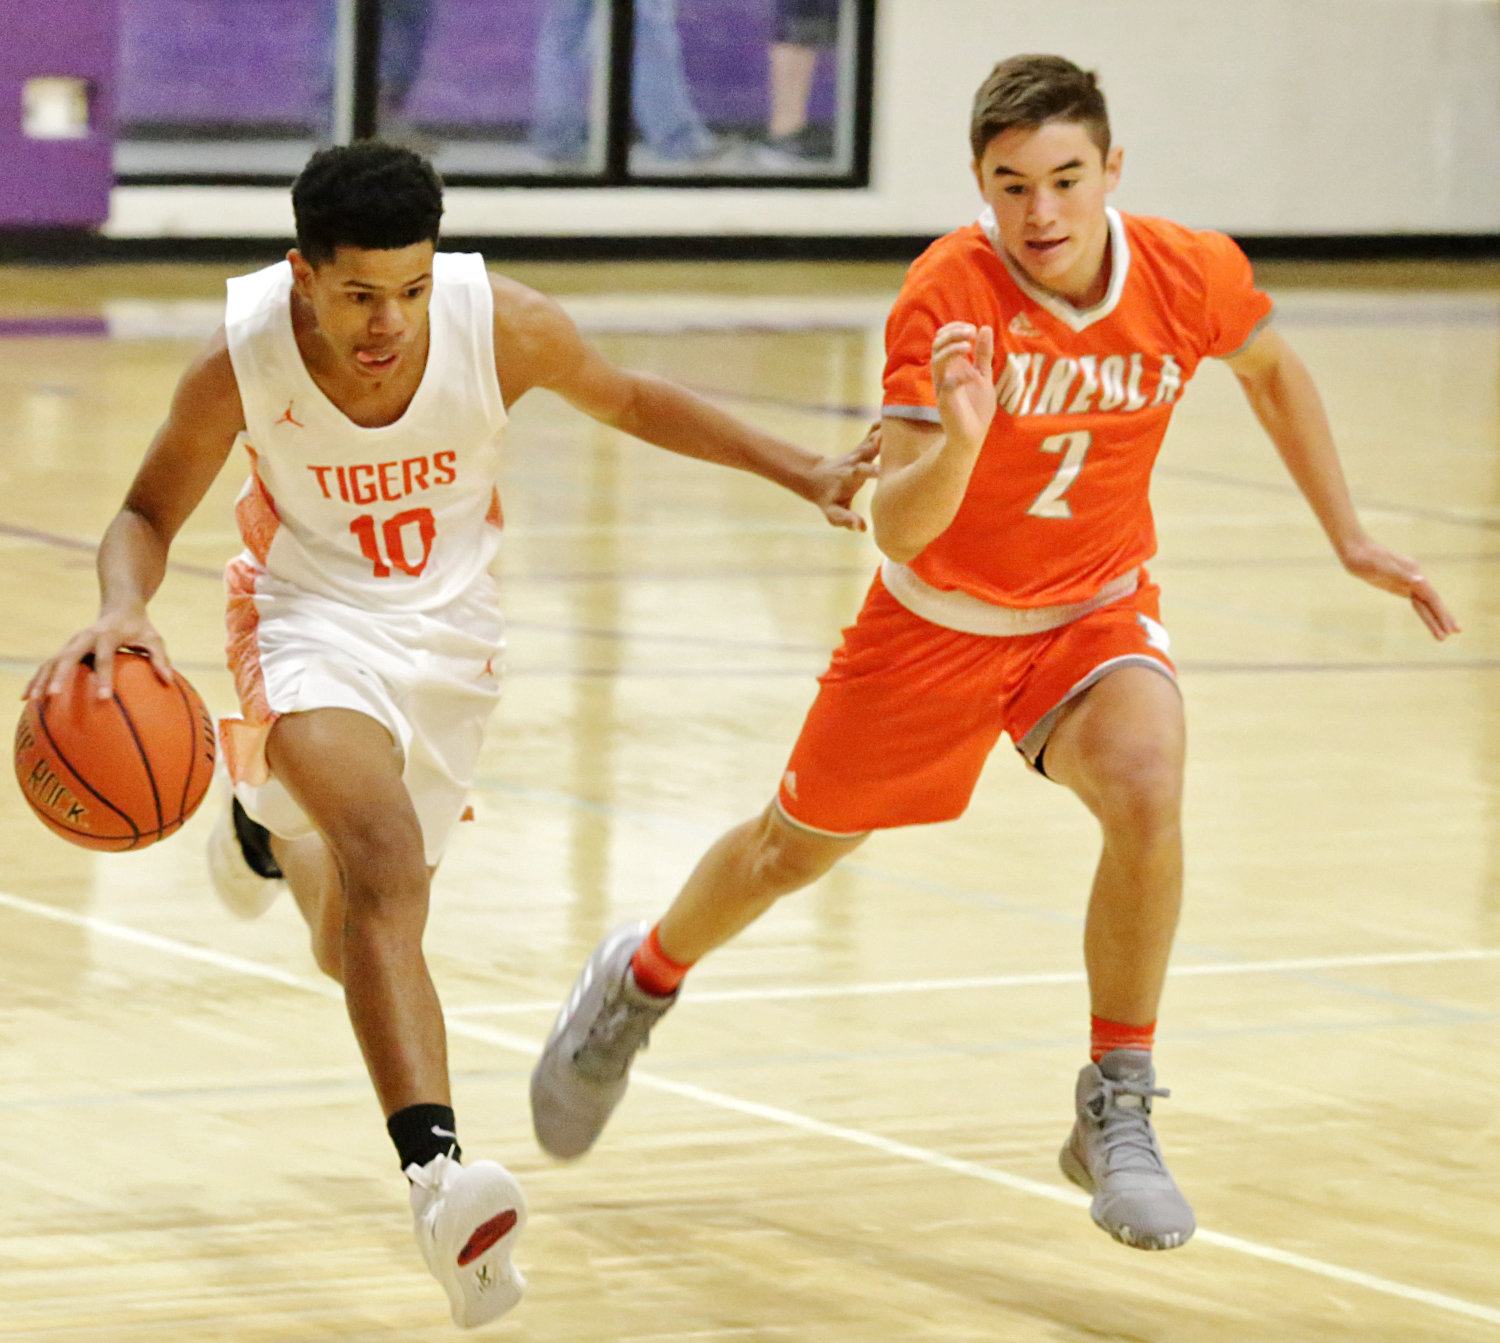 T.J. Moreland, right, of Mineola presses the ball in tourney play against Commerce.